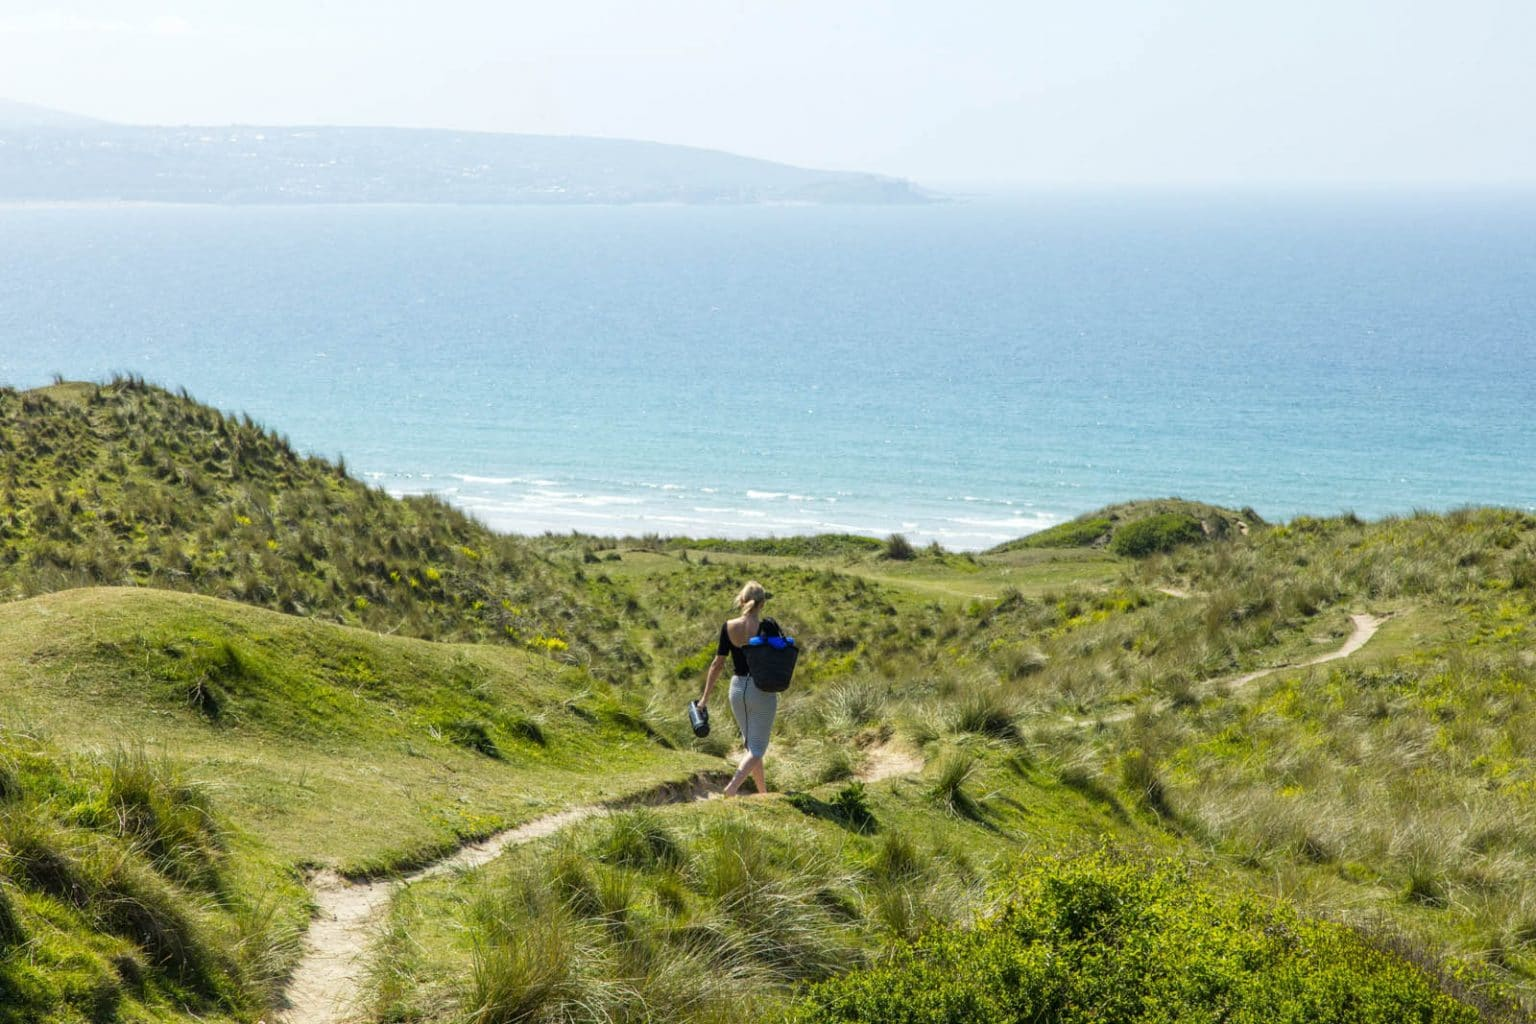 Walking the coast path